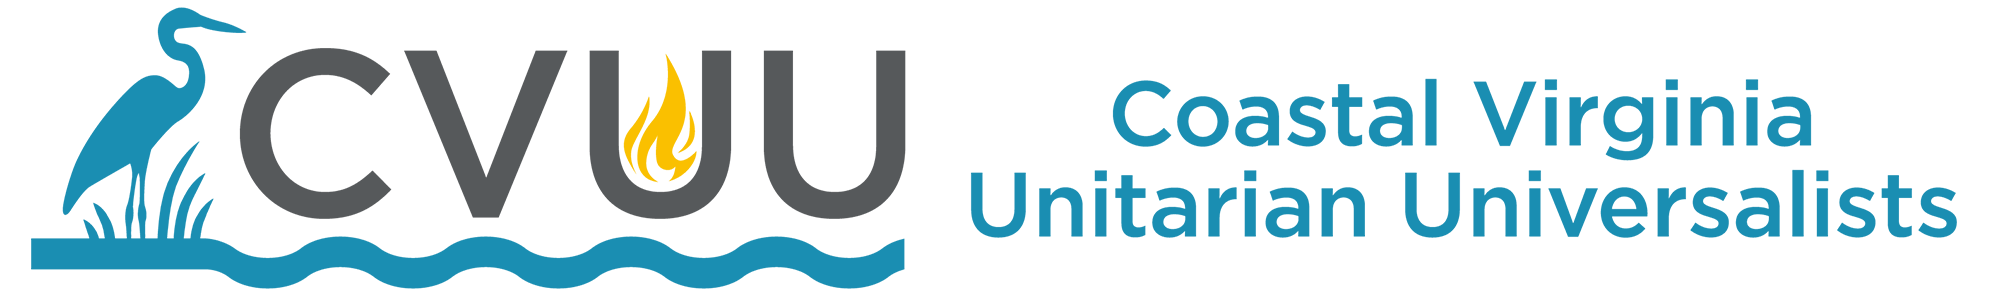 Coastal Virginia Unitarian Universalists Logo